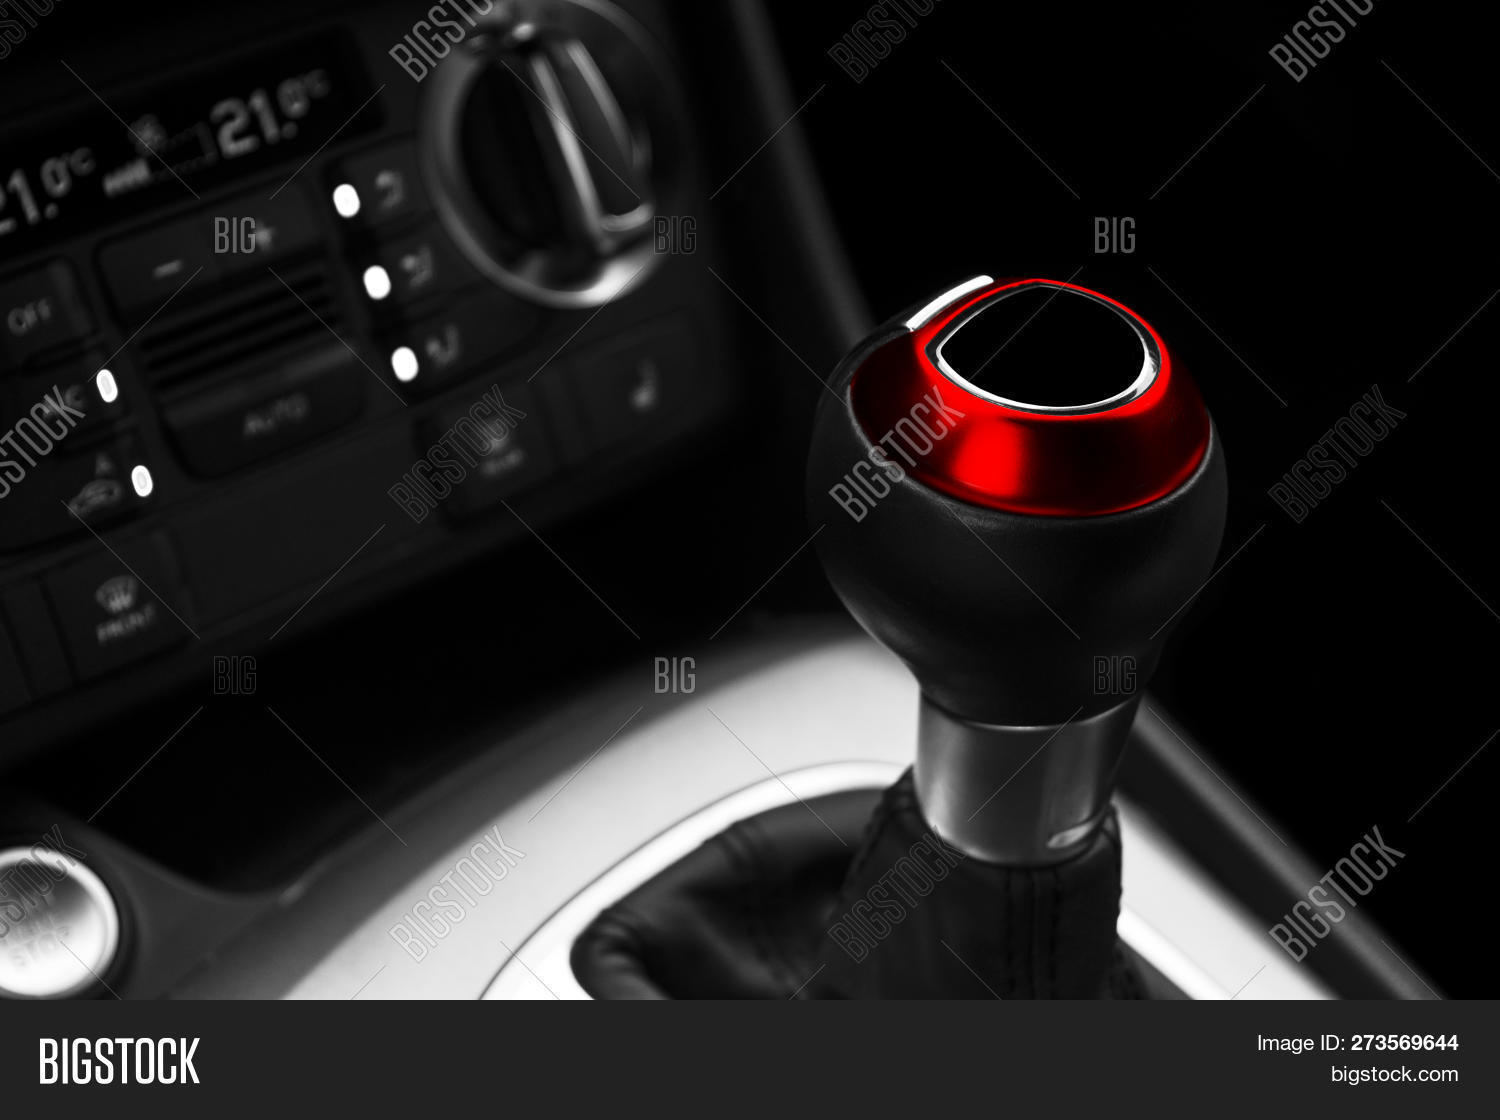 Close View Red Gear Image & Photo (Free Trial)   Bigstock